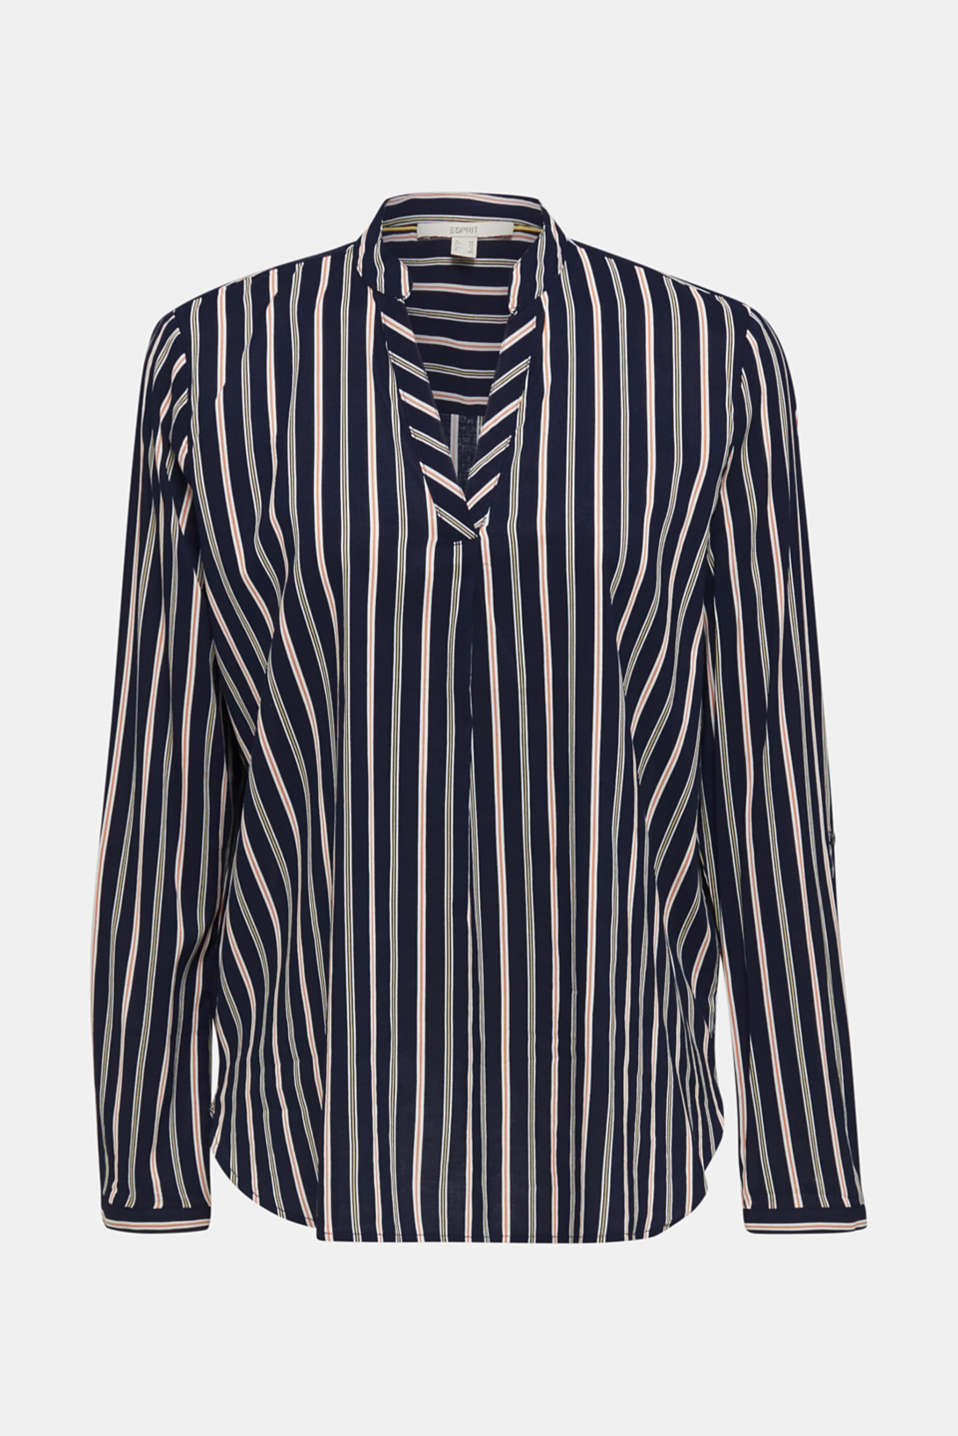 Slip-on blouse with stripes, NAVY, detail image number 5